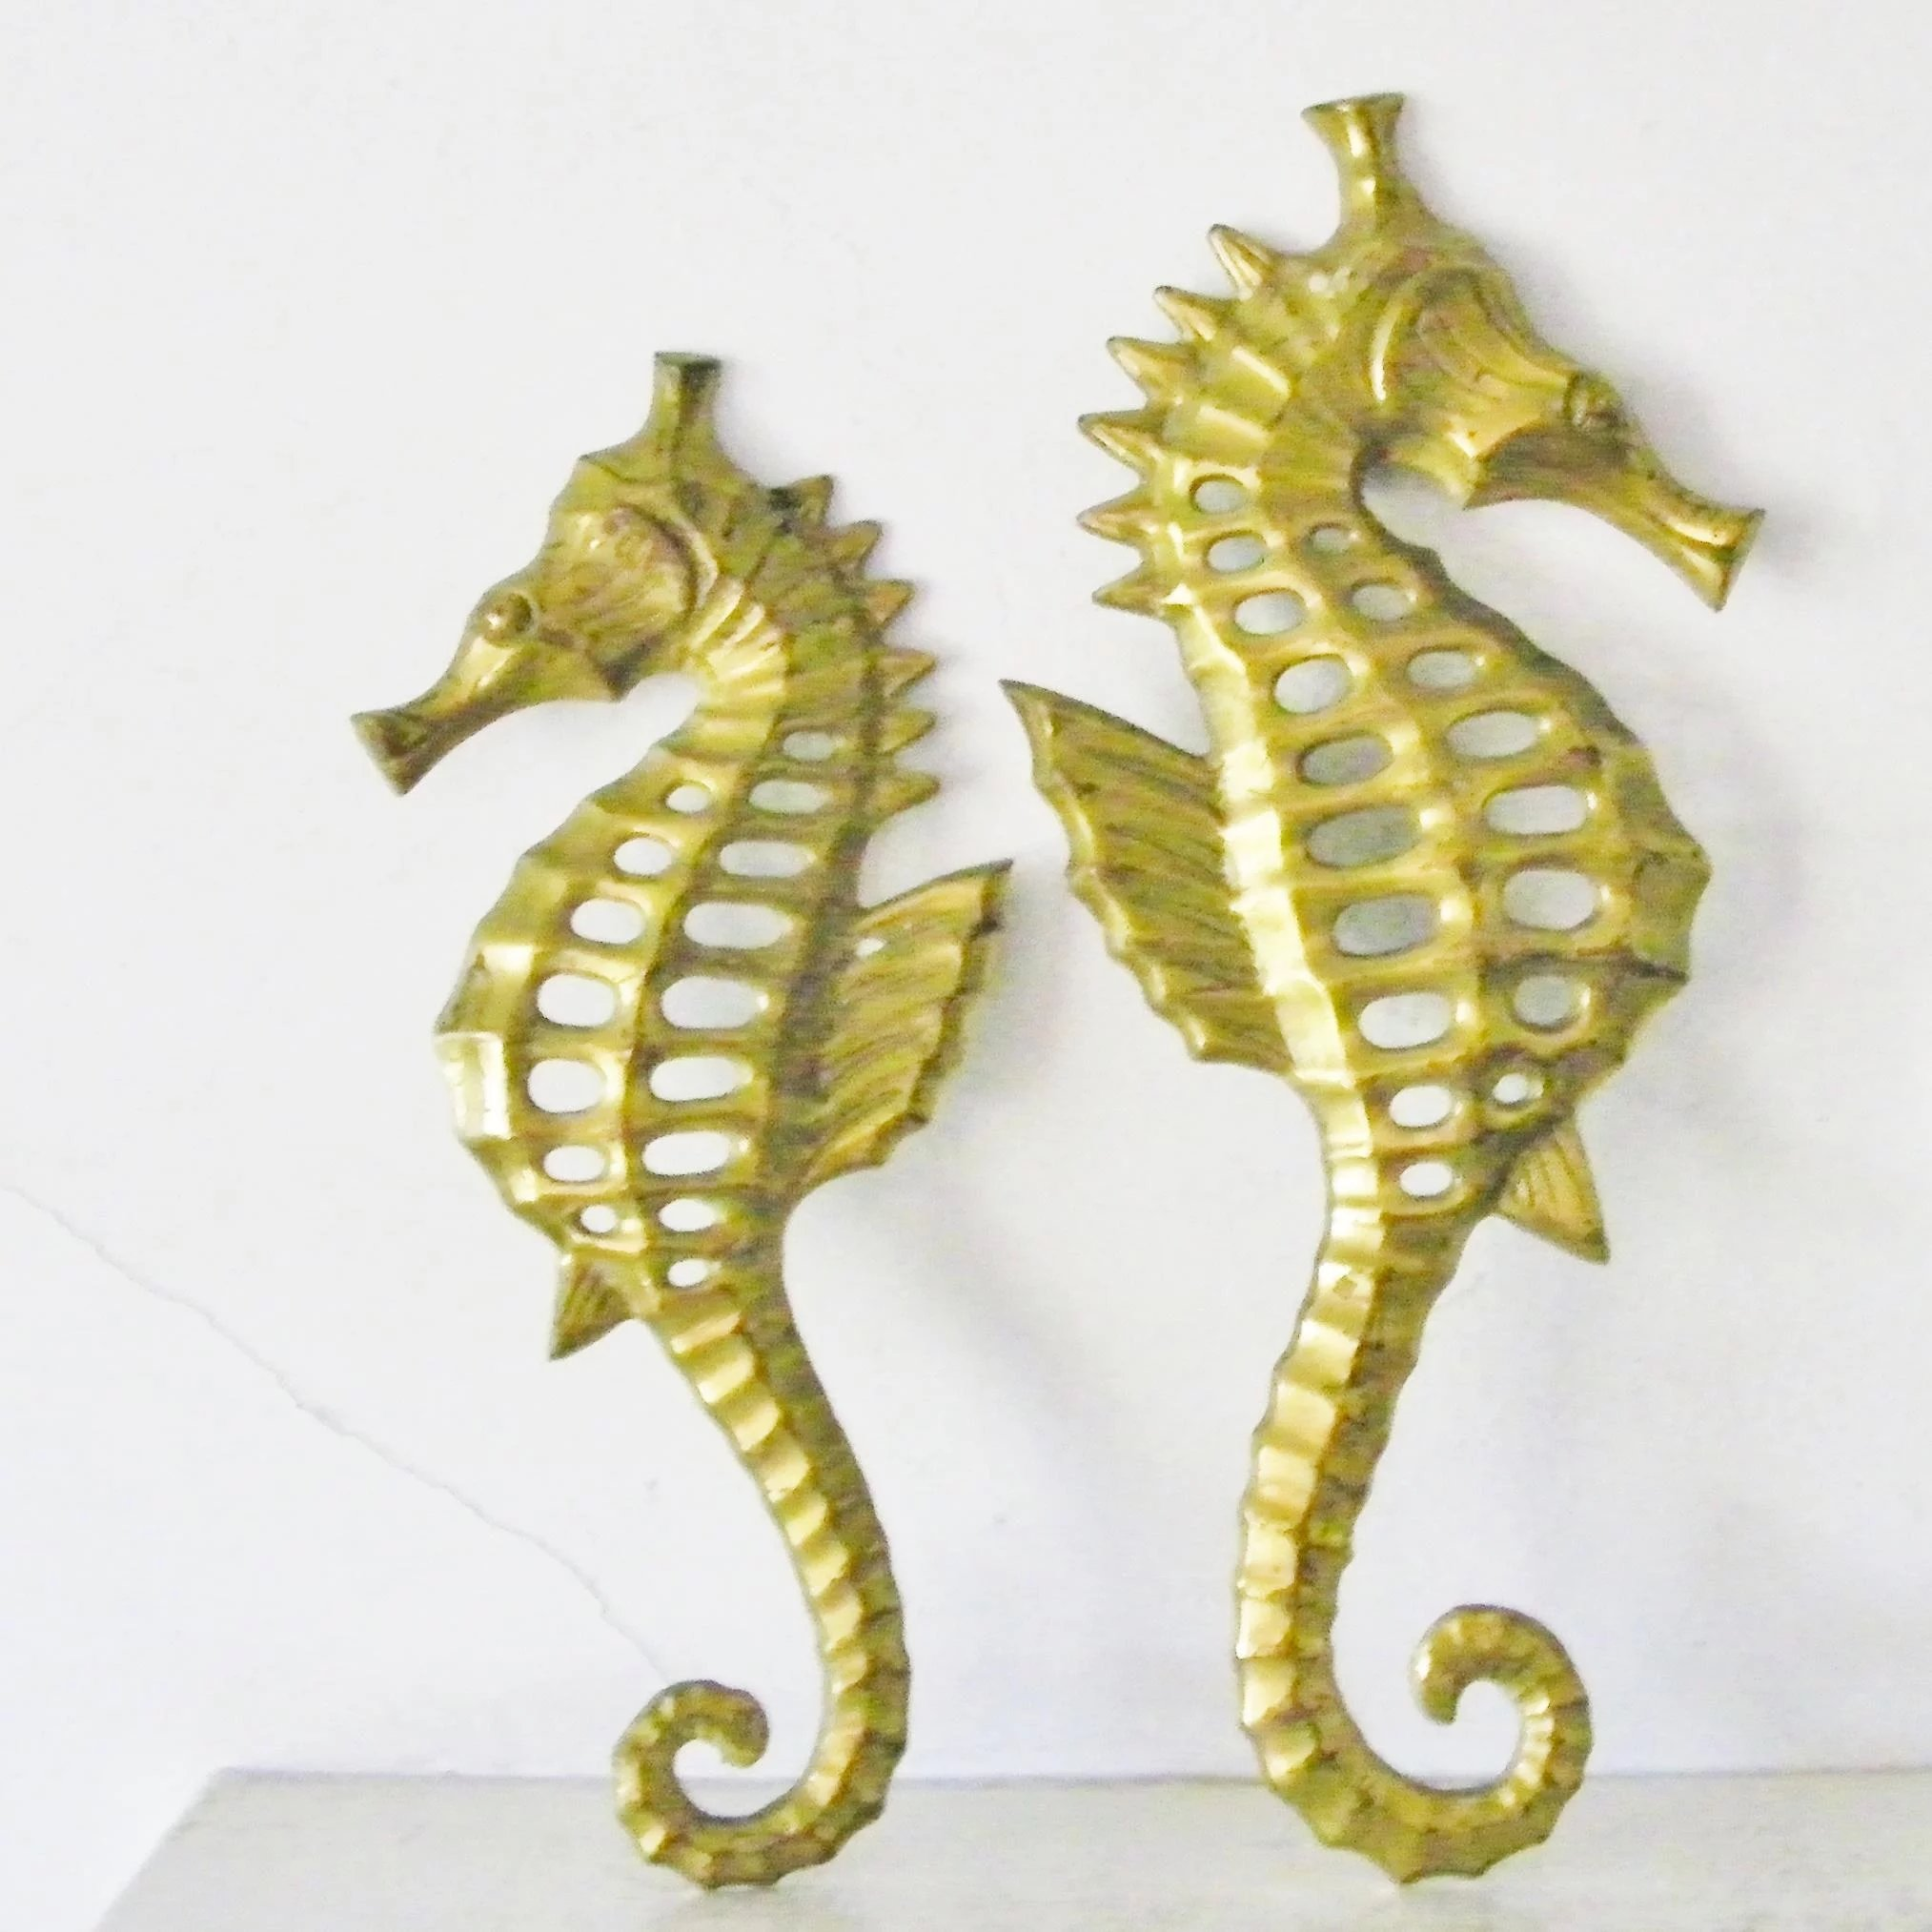 Pair of Brass Seahorse wall hanging decor sea horse figurine plaques